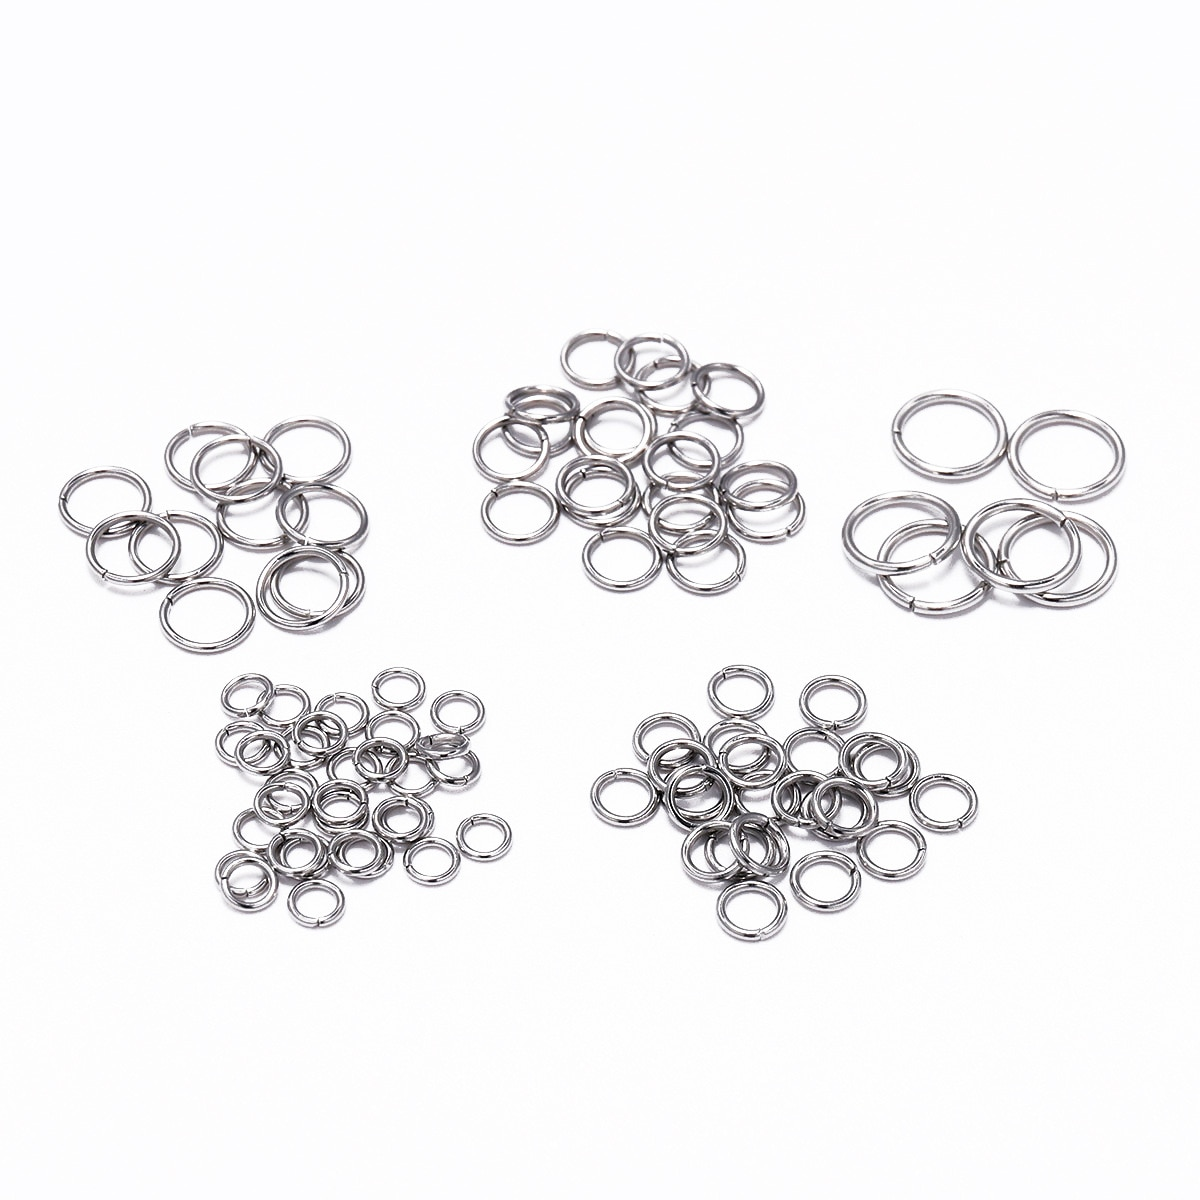 100-200pcs 3/4/5/6/7/8/10/12/14/15mm Stainless Steel Open Jump Rings & Split Ring for DIY Jewelry Findings Making Accessories 1 box 4 5 6 7 8 10mm jewelry findings open jump split rings connector for diy jewelry findings making rhodium gold silver color